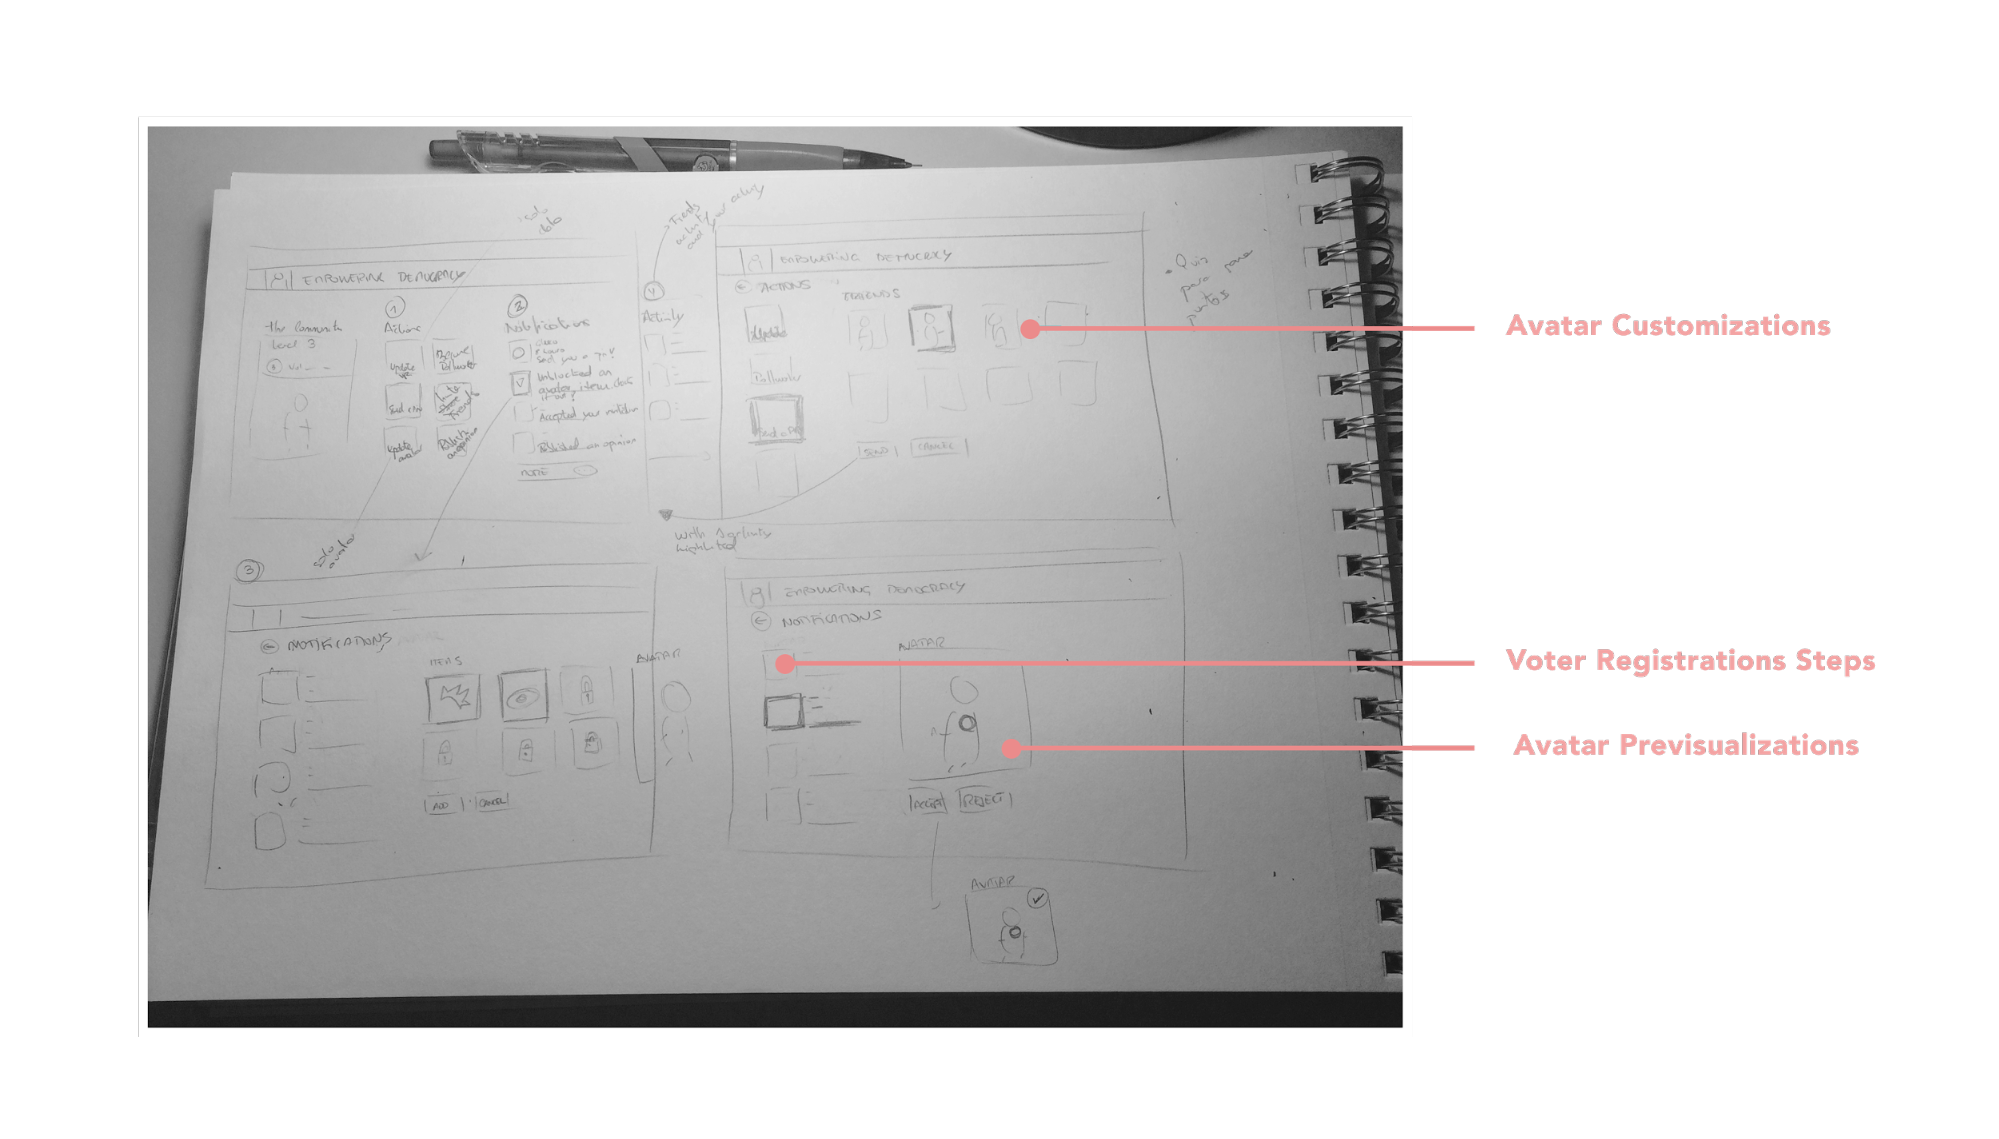 UX prototyping starts with sketches